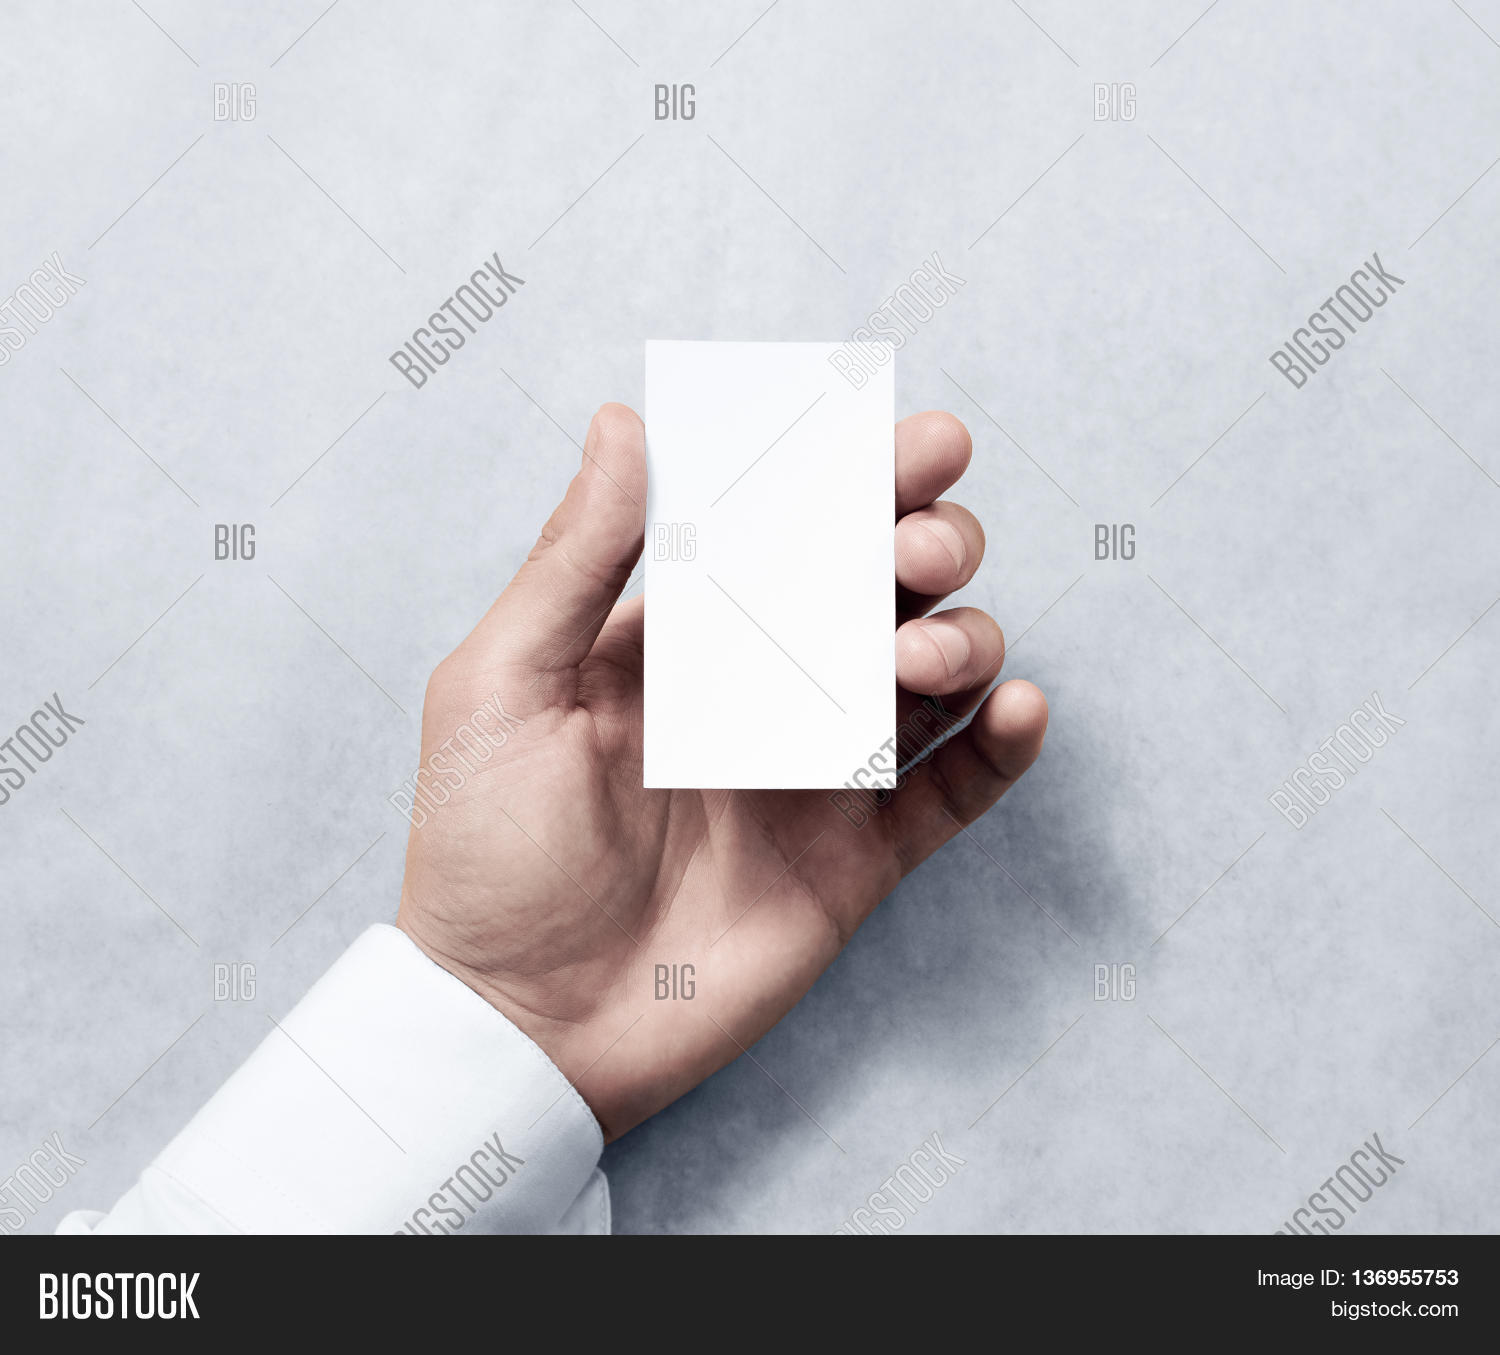 Hand Holding Blank Vertical White Image & Photo | Bigstock